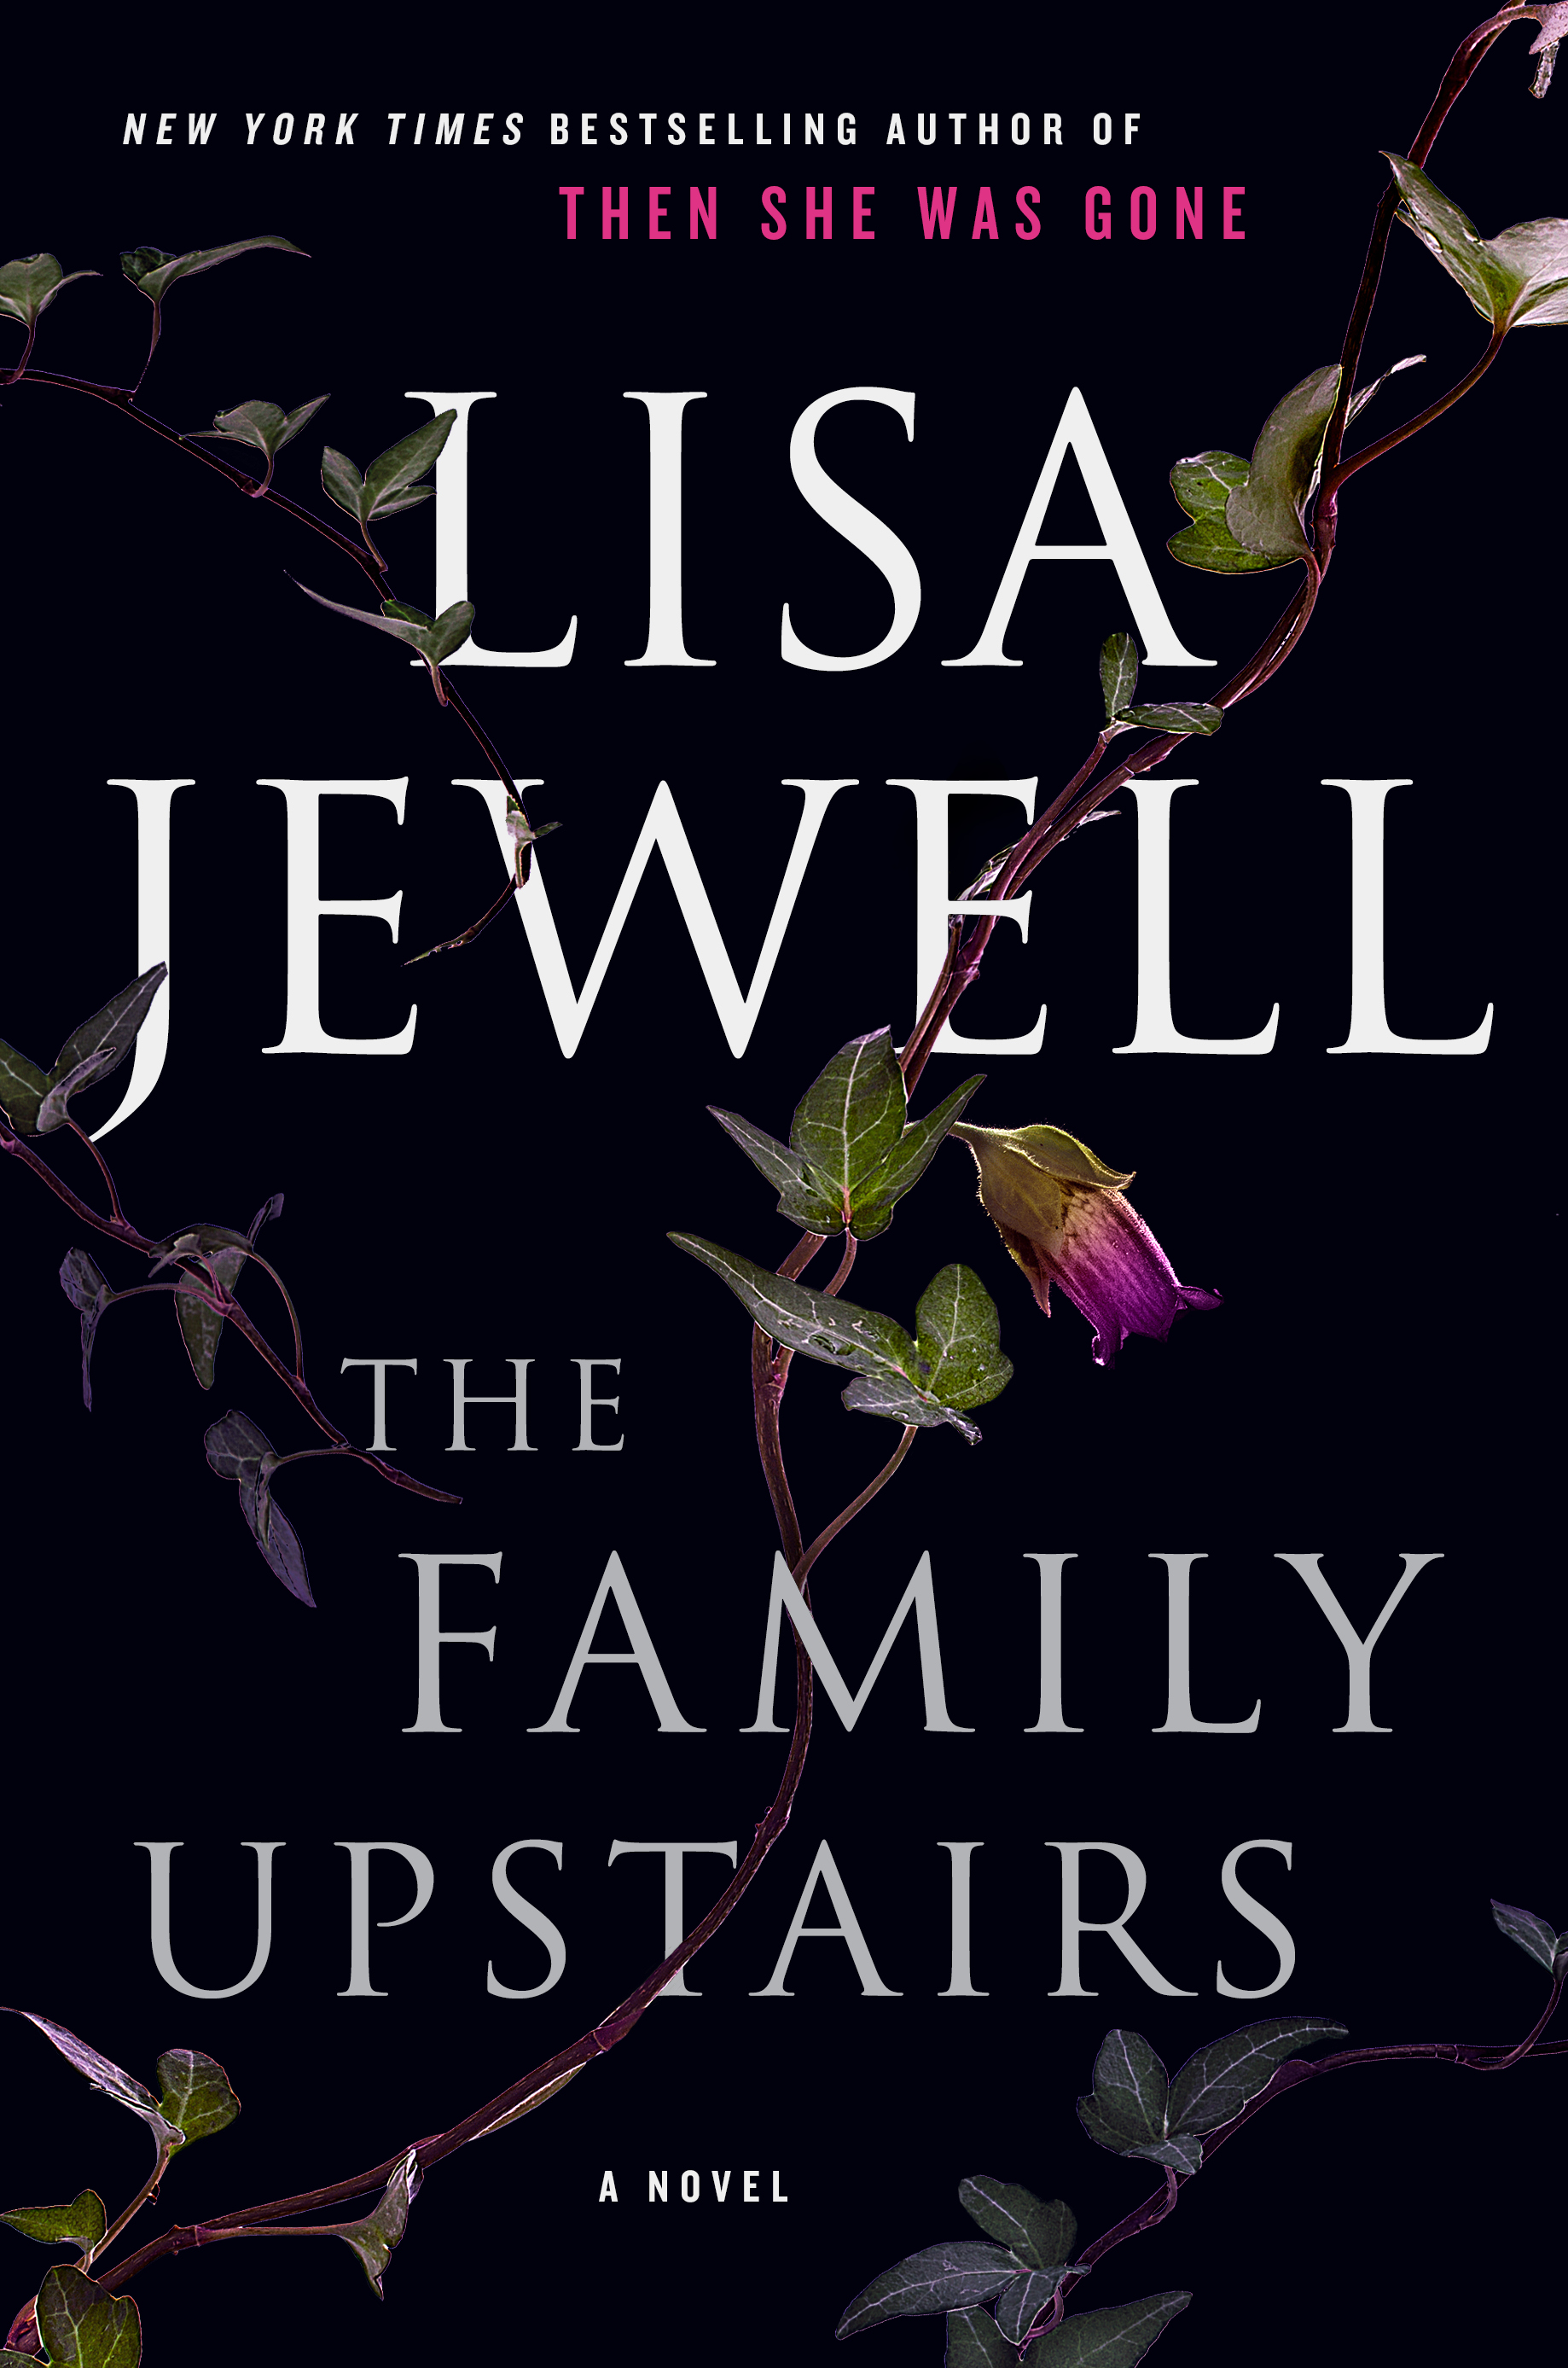 [Epub] ↠ The Family Upstairs Author Lisa Jewell – Addwebsites.info